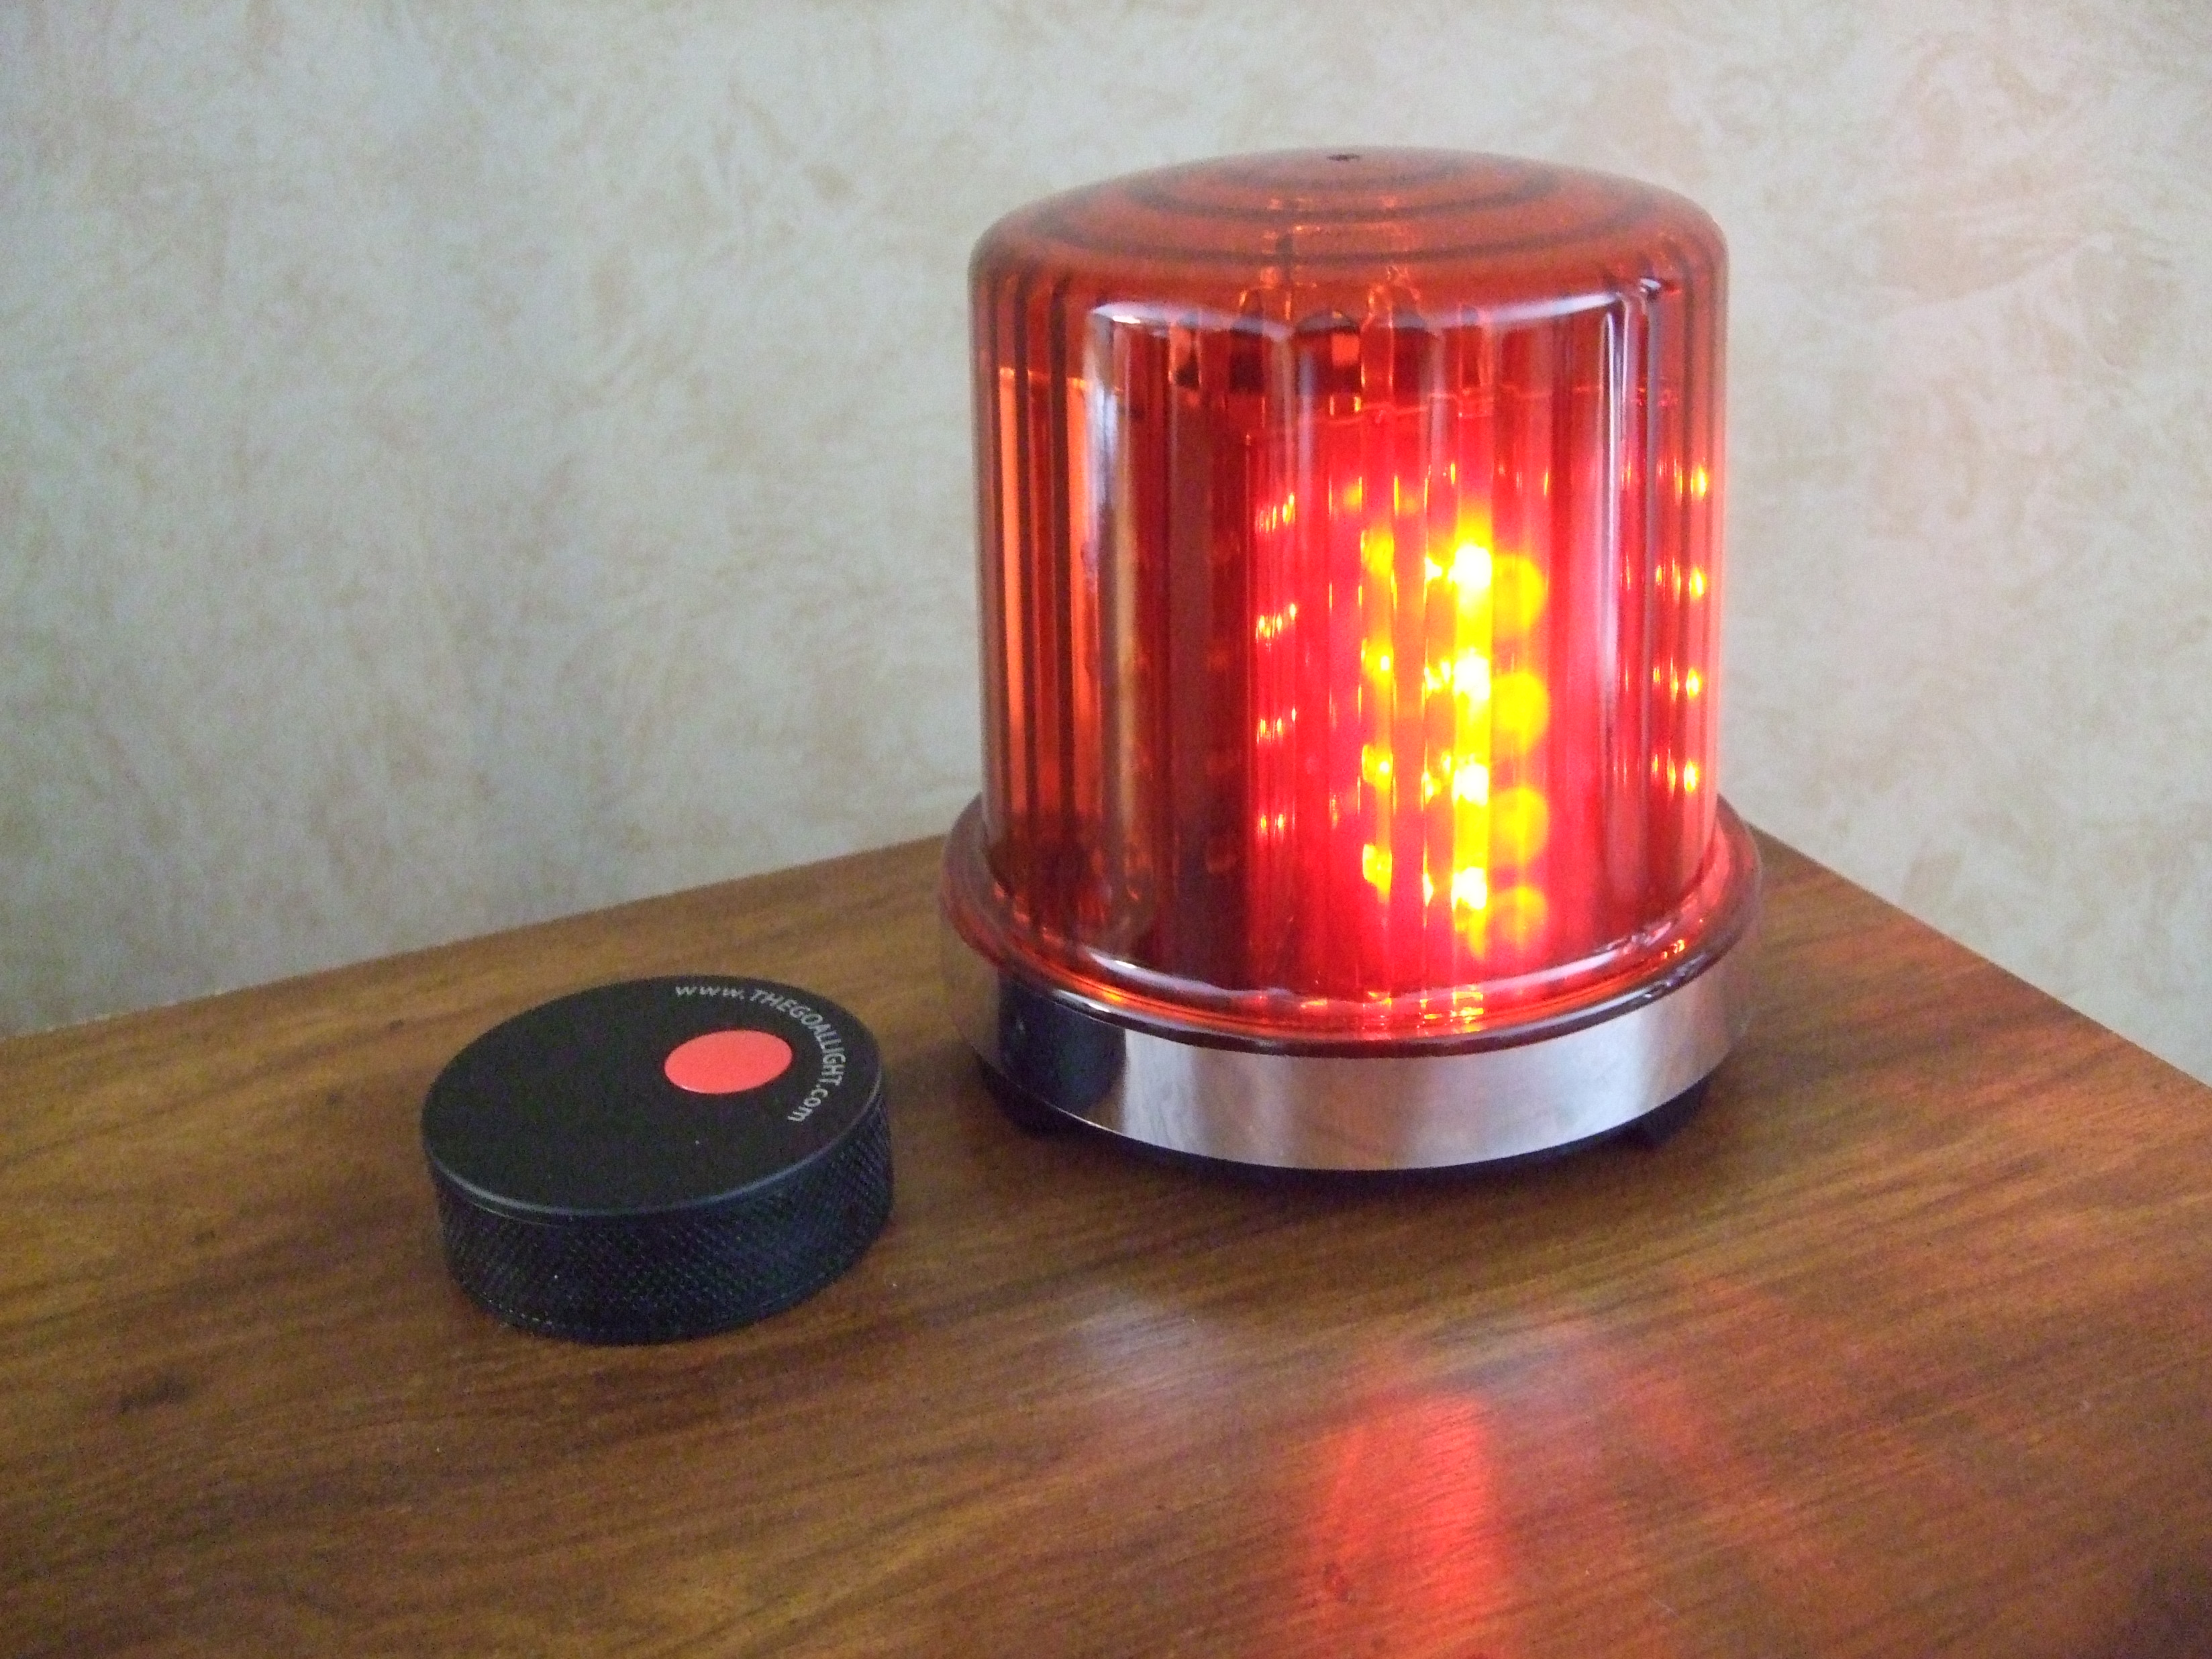 The Goal Light